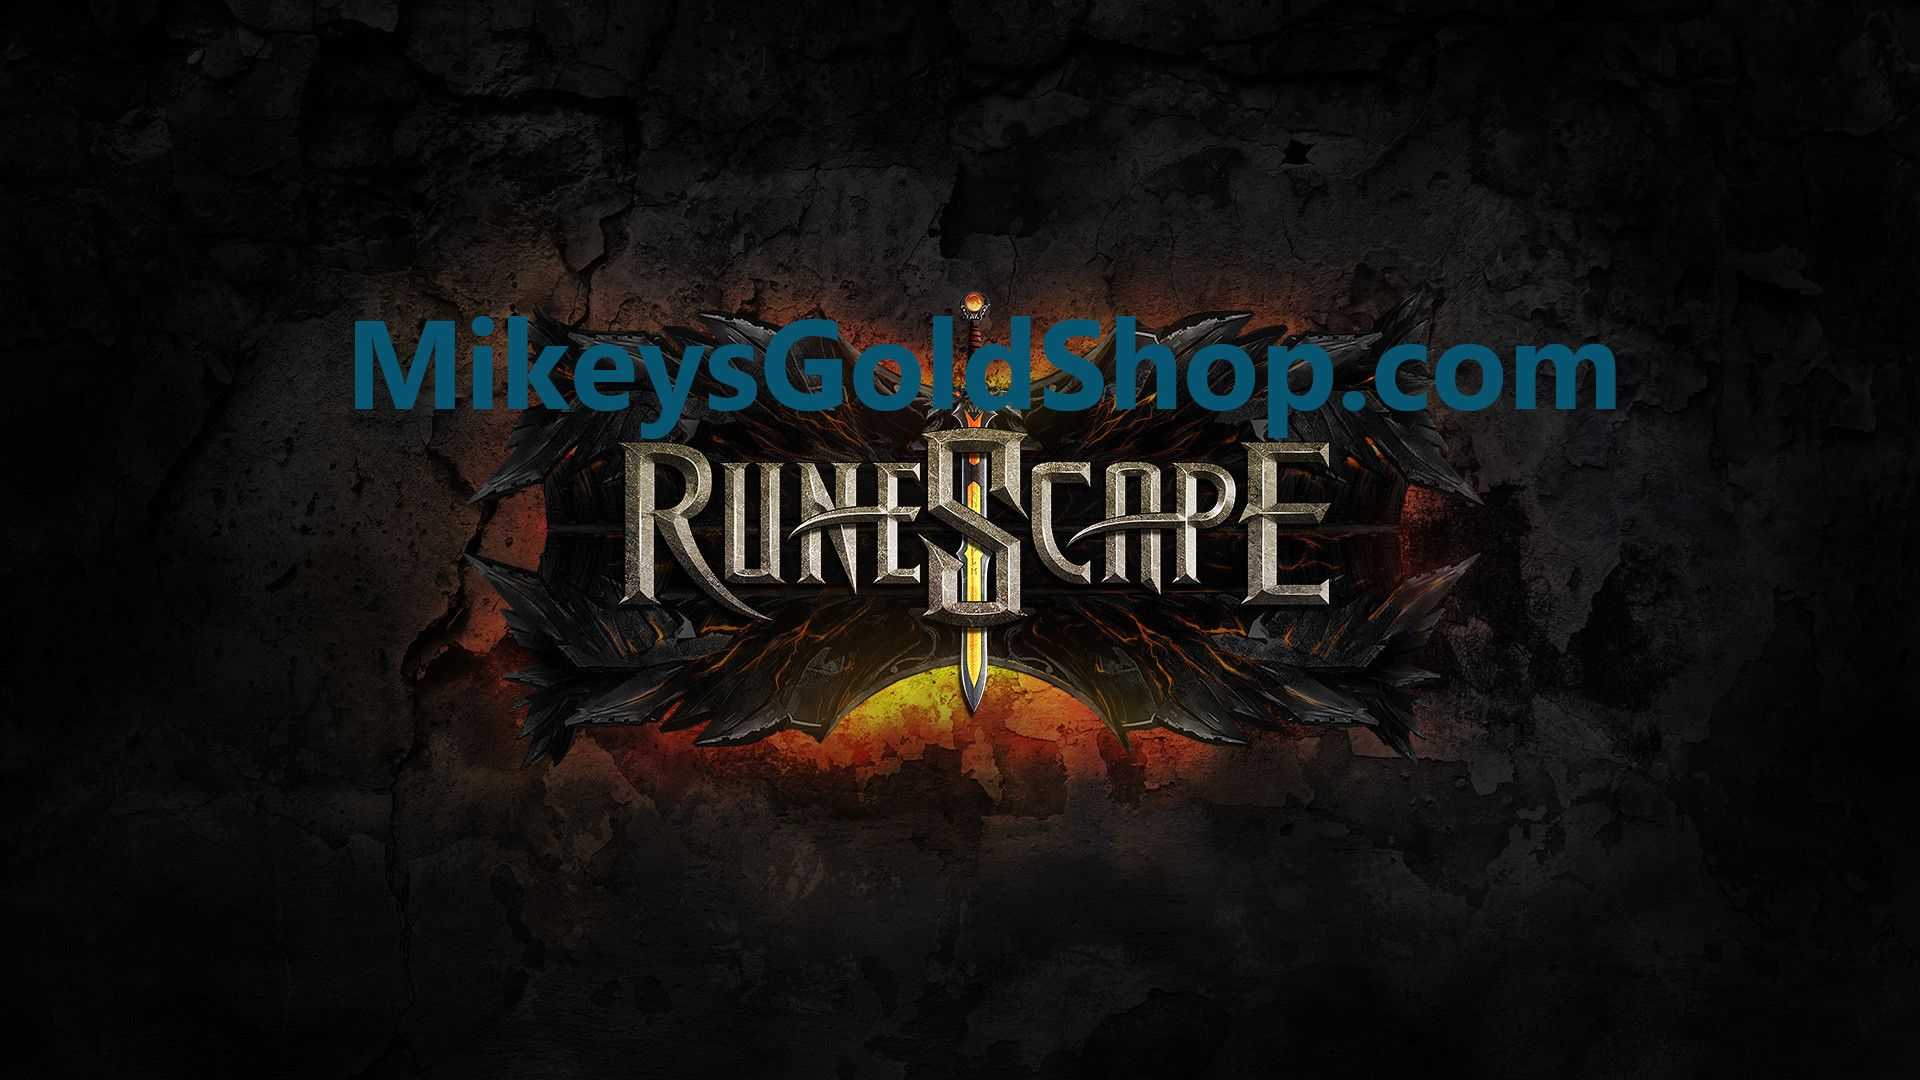 The best place to buy OSRS Runescape Gold / Accounts and